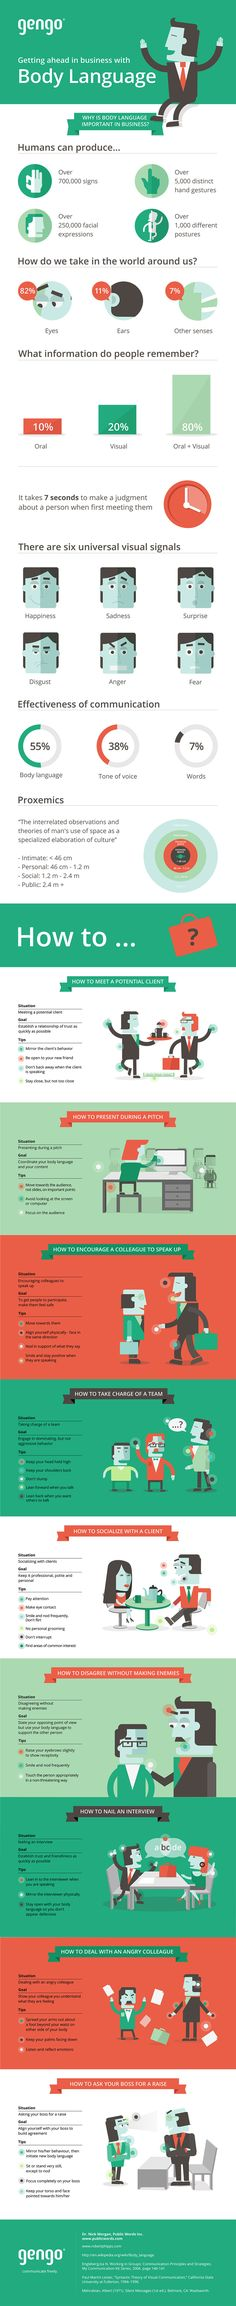 [Infographic] Getting Ahead in Business with Body Language